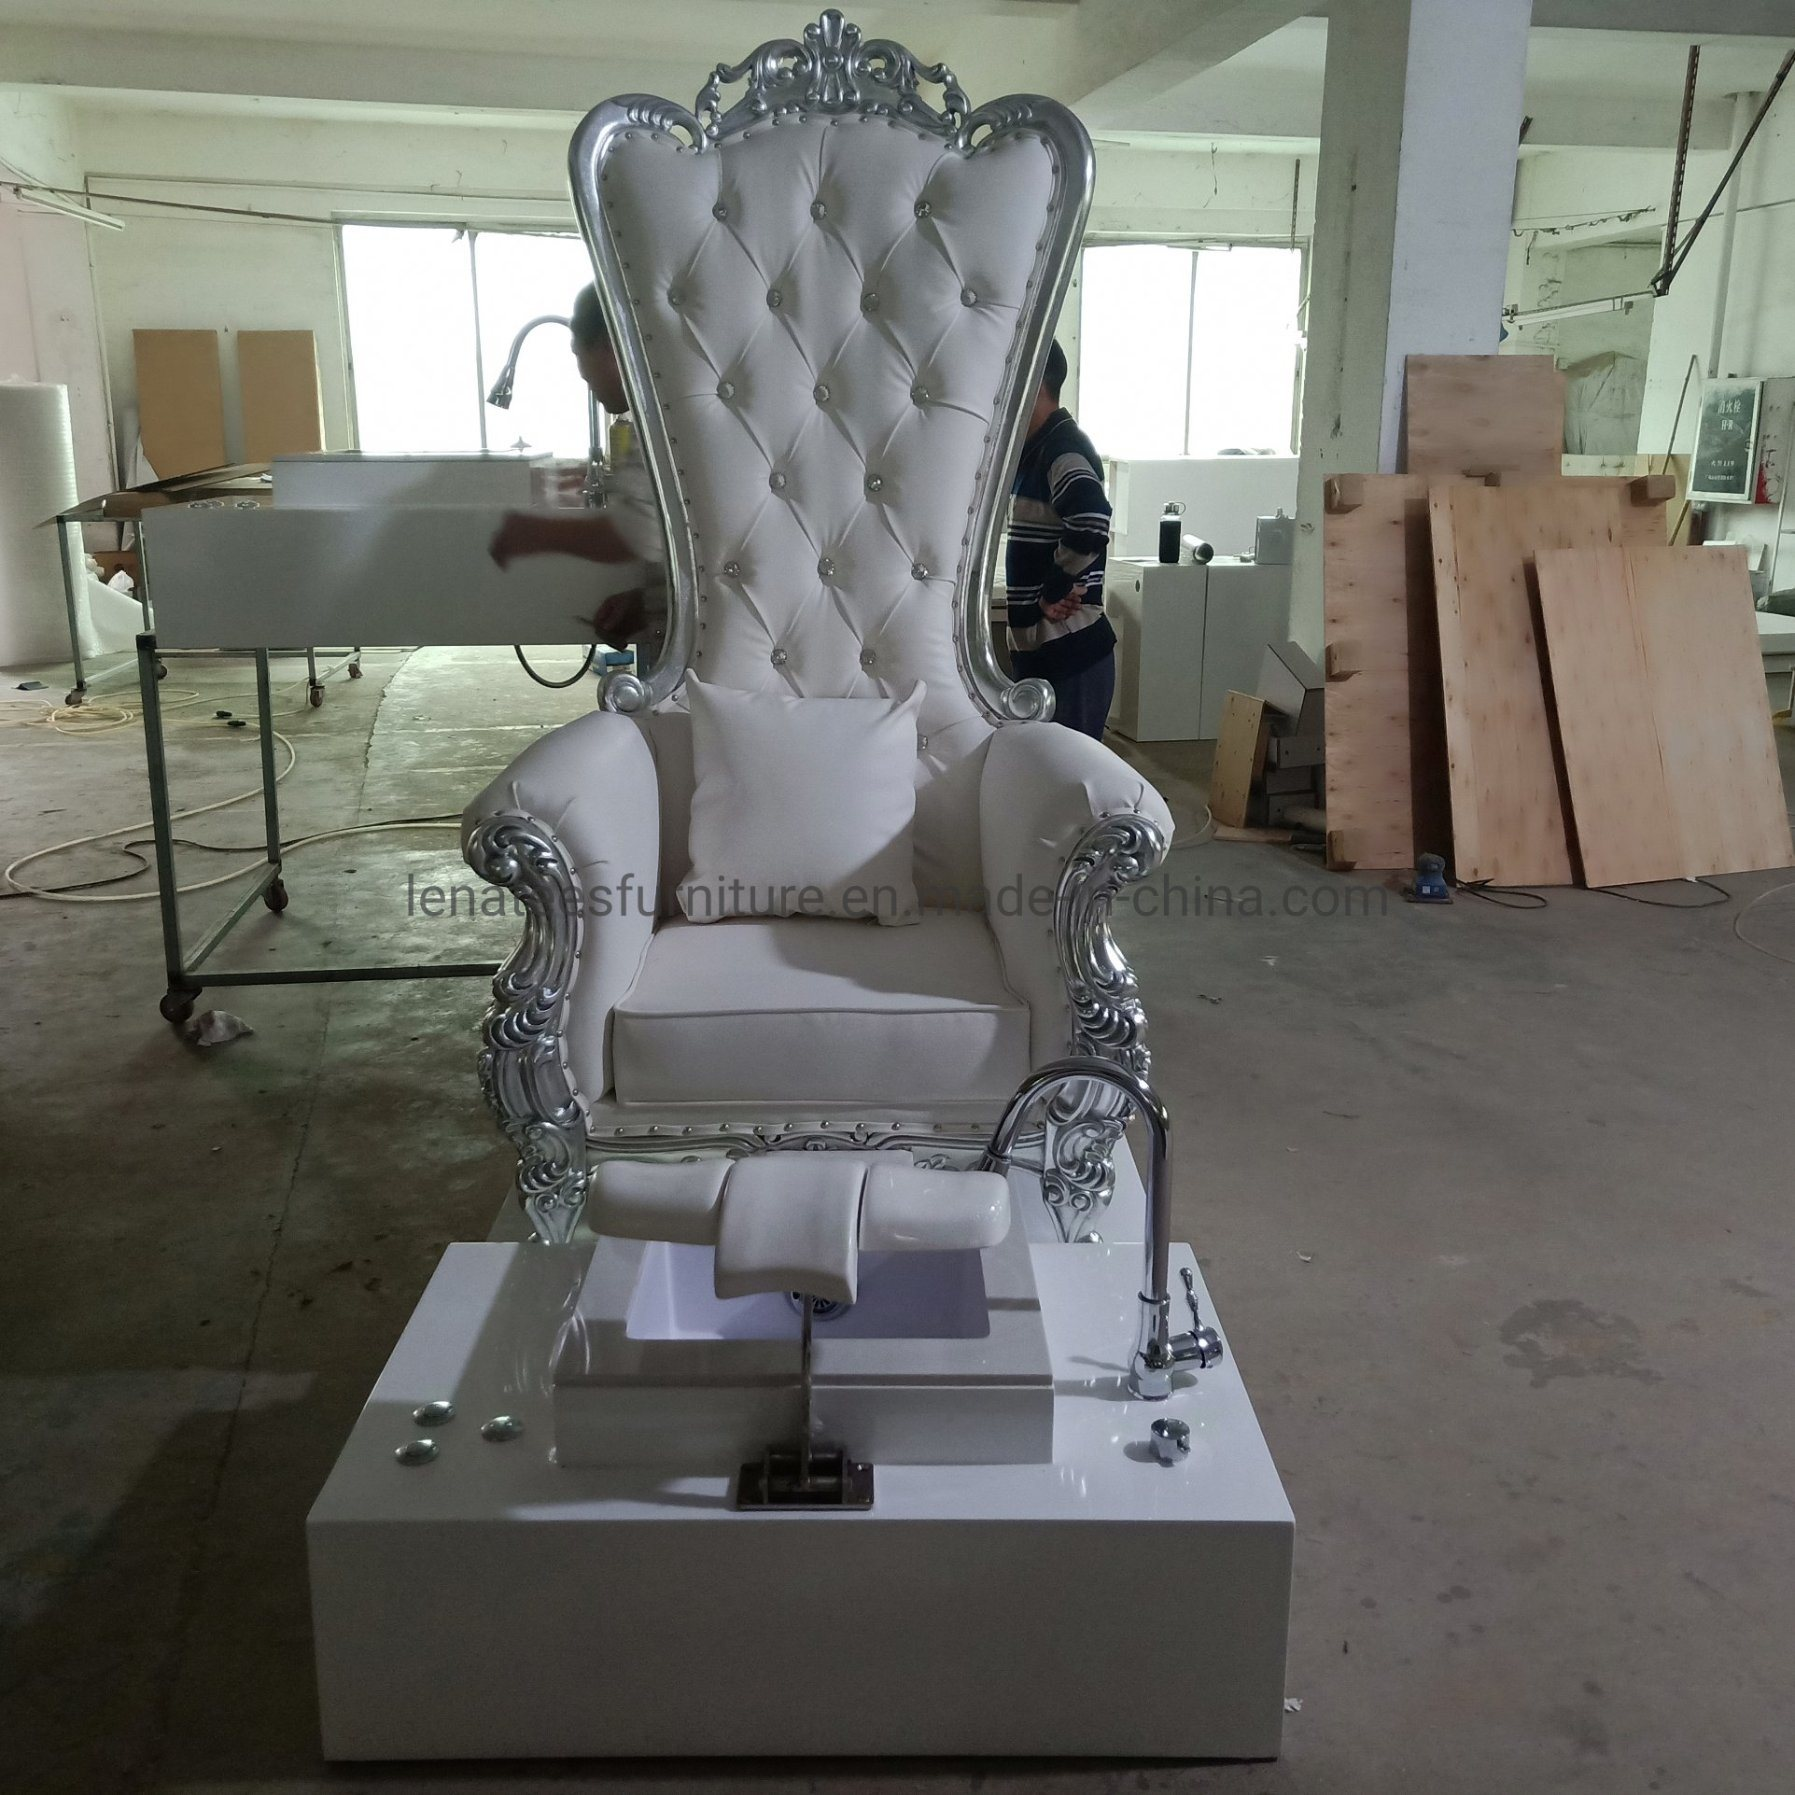 China Fp003 Factory Custom Made Jacuzzi Pedicure Chair Nail Beauty Salon Furniture Photos Pictures Made In China Com